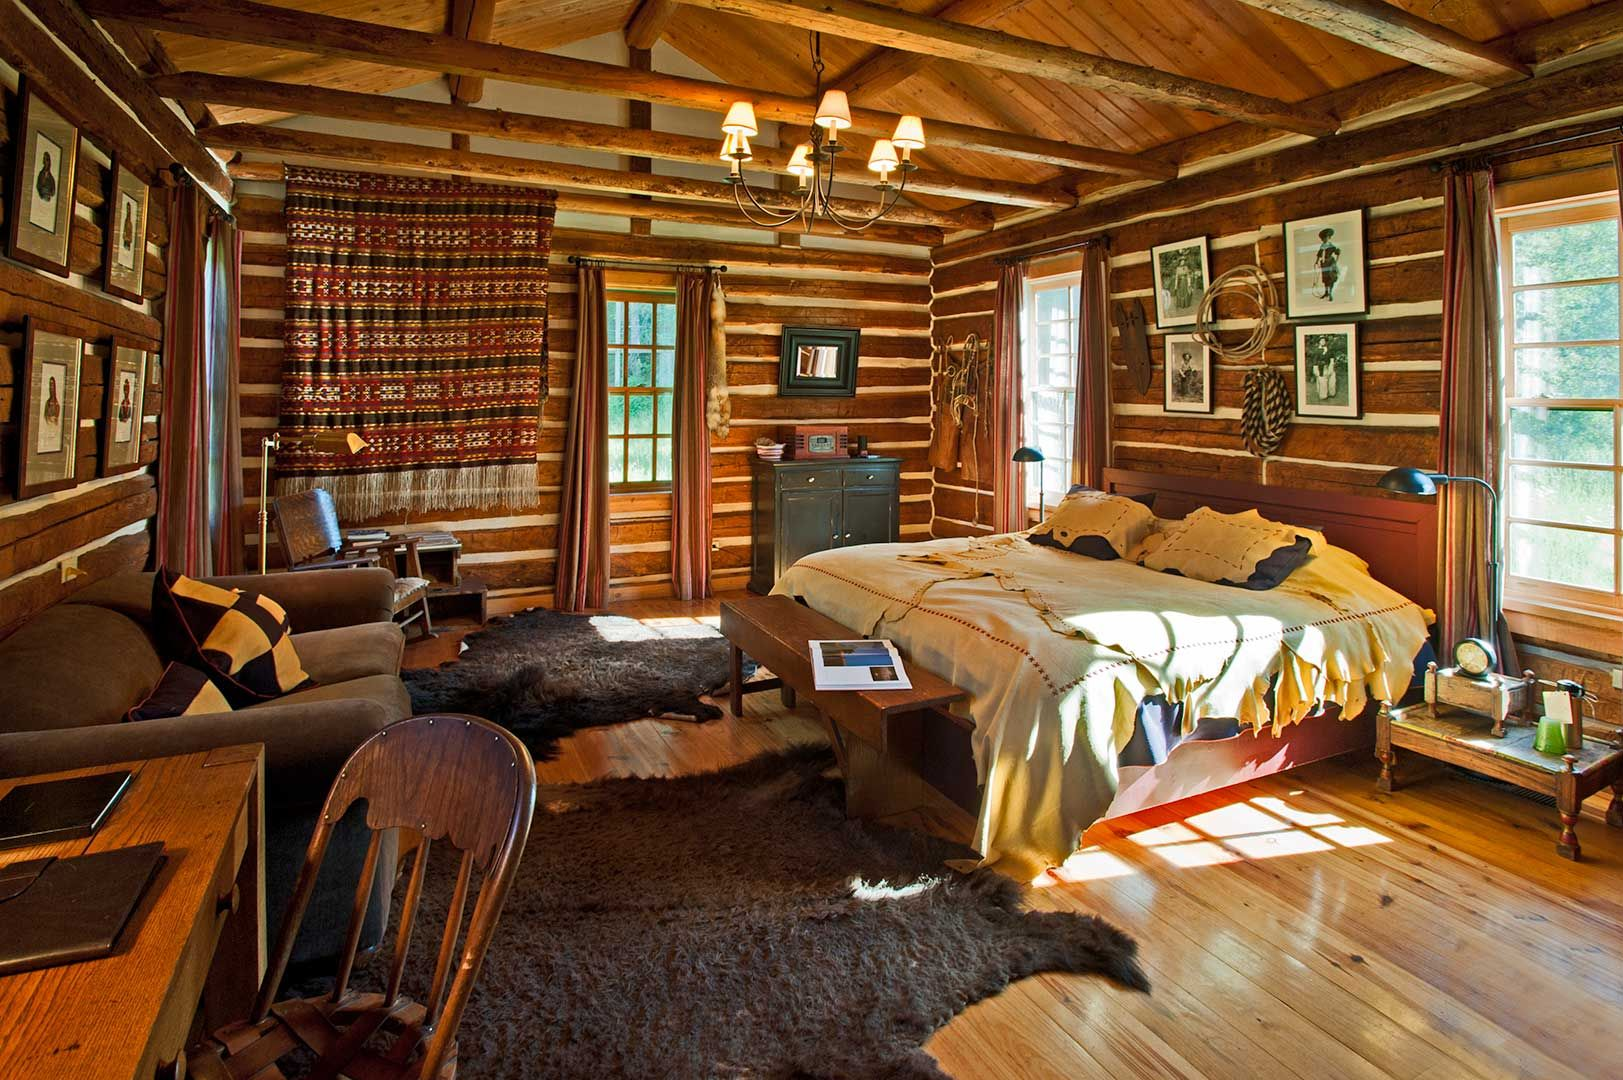 Major Ross Cabin - Dunton Hot Springs Resort: Dolores, Colorado